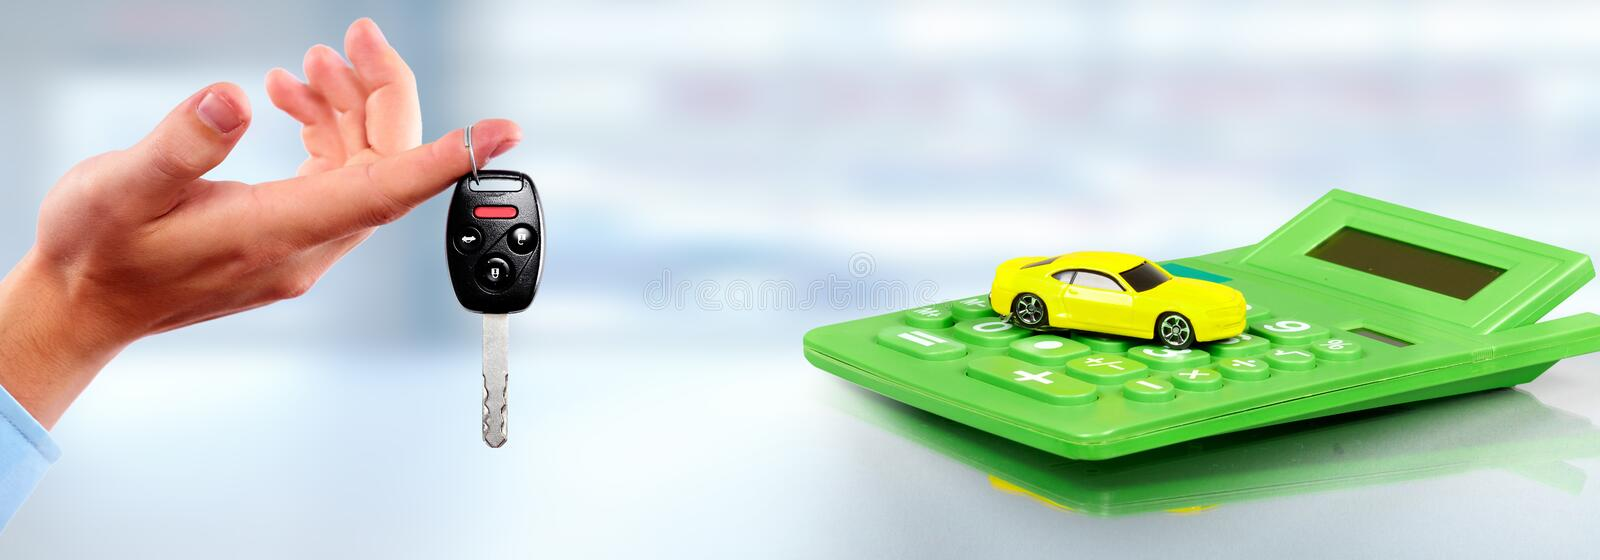 Yellow car and calculator. Car and calculator. Auto dealership and rental concept background stock photography